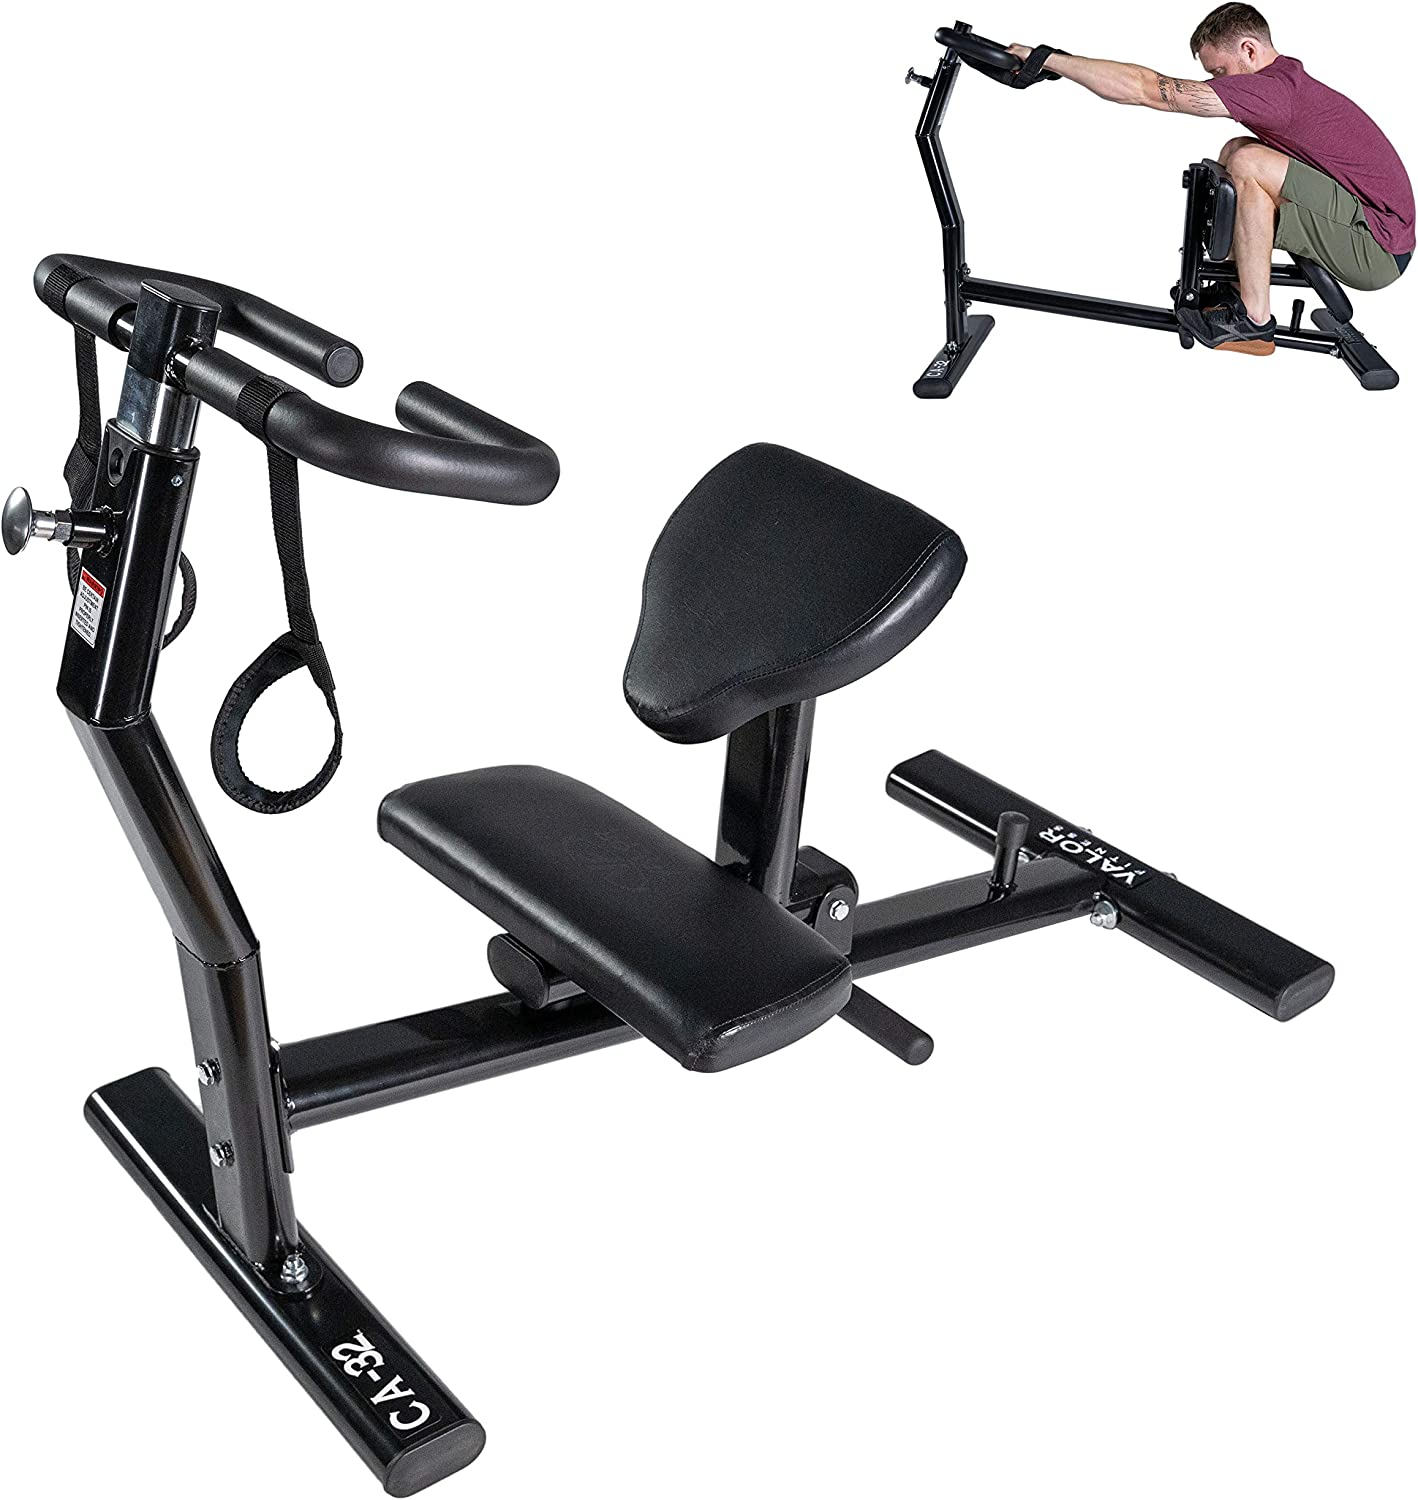 Valor Fitness CA-32 Back Stretcher Machine and Leg Stretch to Reduce Back Pain, Soreness, and Improve Mobility w/Stretch Strap and Adjustable Handles